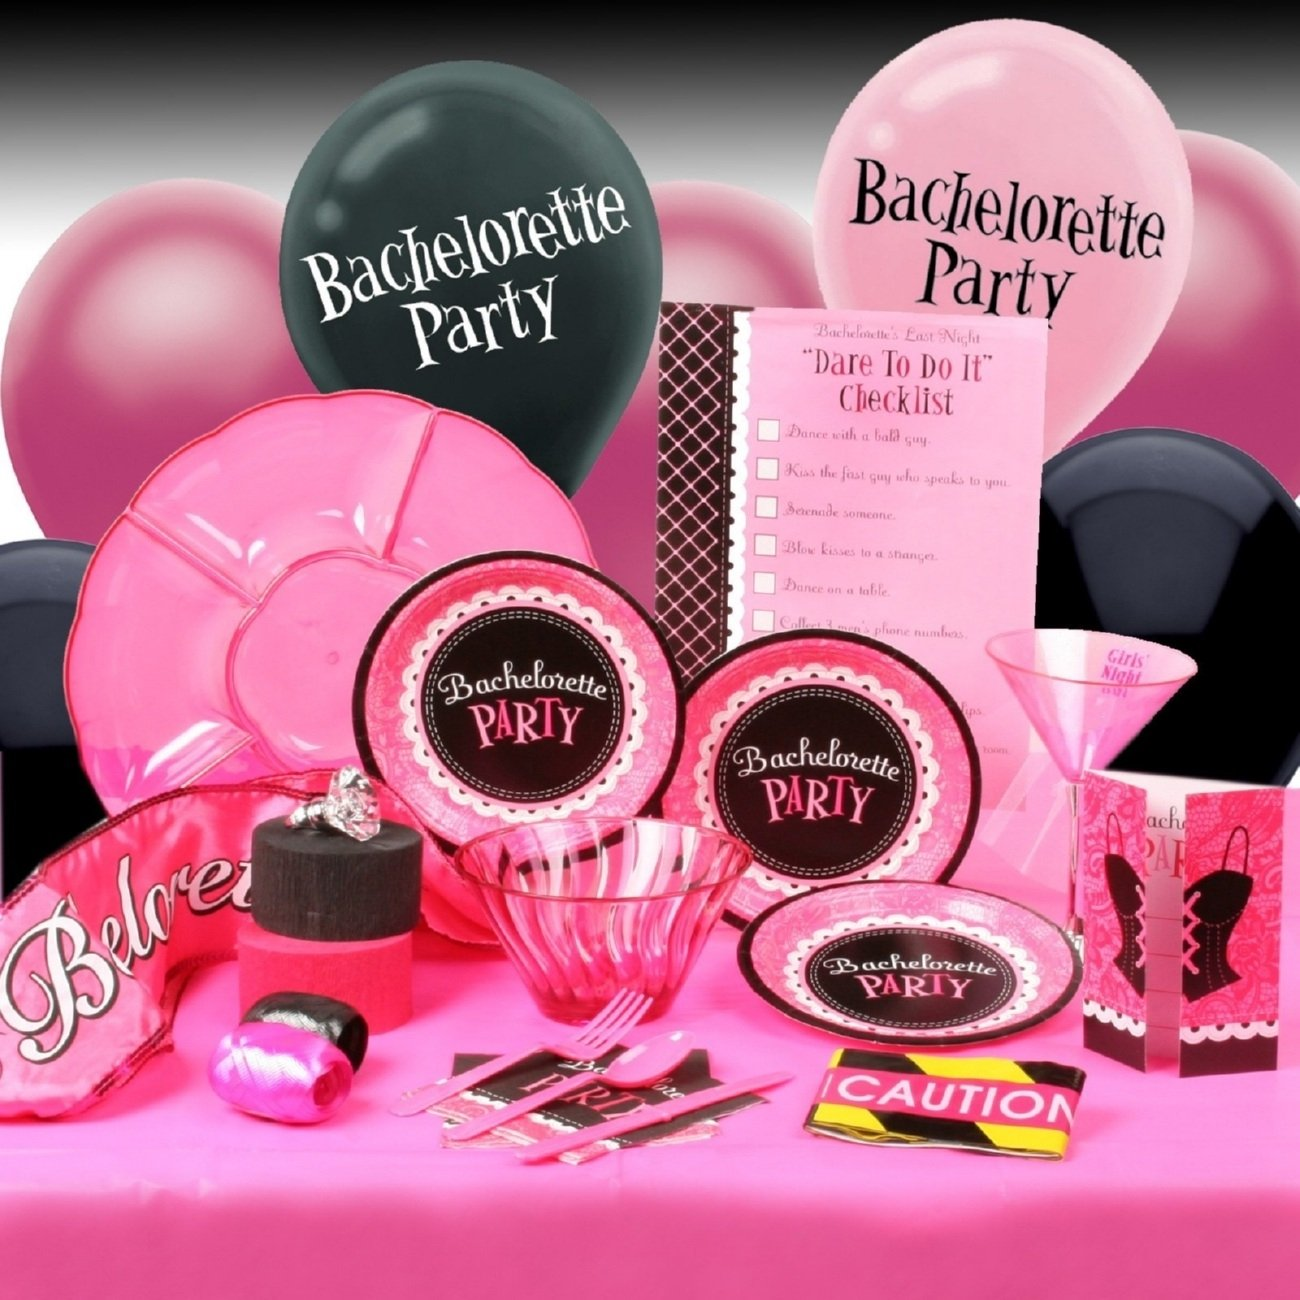 10 Fantastic Cute Bachelorette Party Gift Ideas cute bachelorette party gift ideas cute bachelorette party gifts 2021